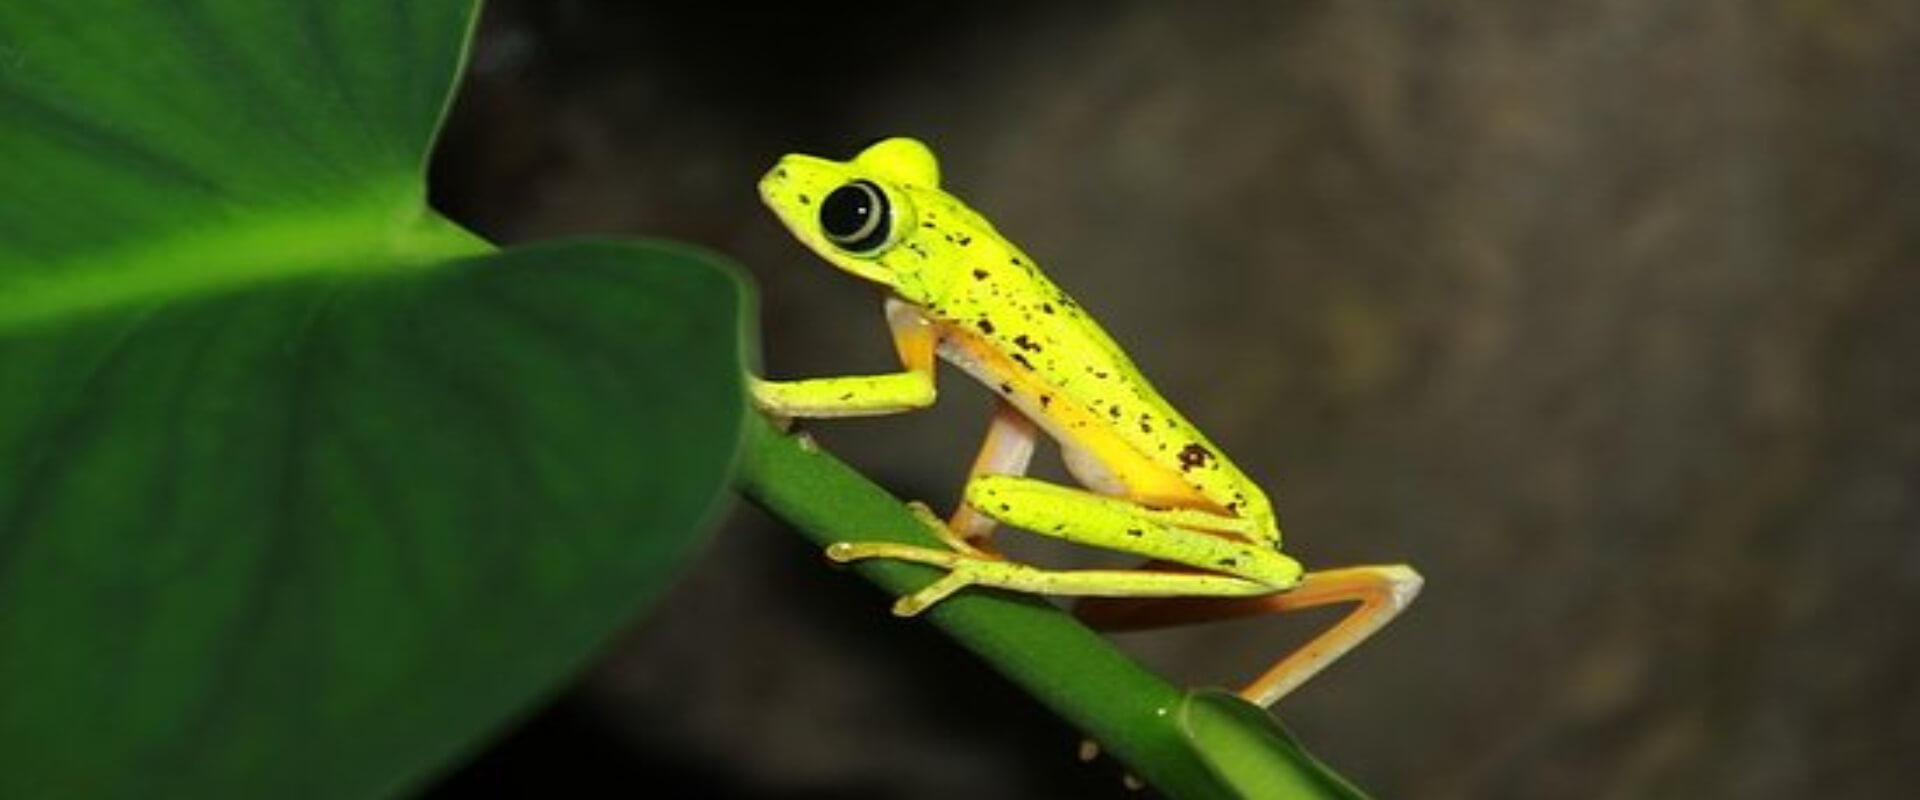 Arenal Natura Guided Night Walk | Costa Rica Jade Tours